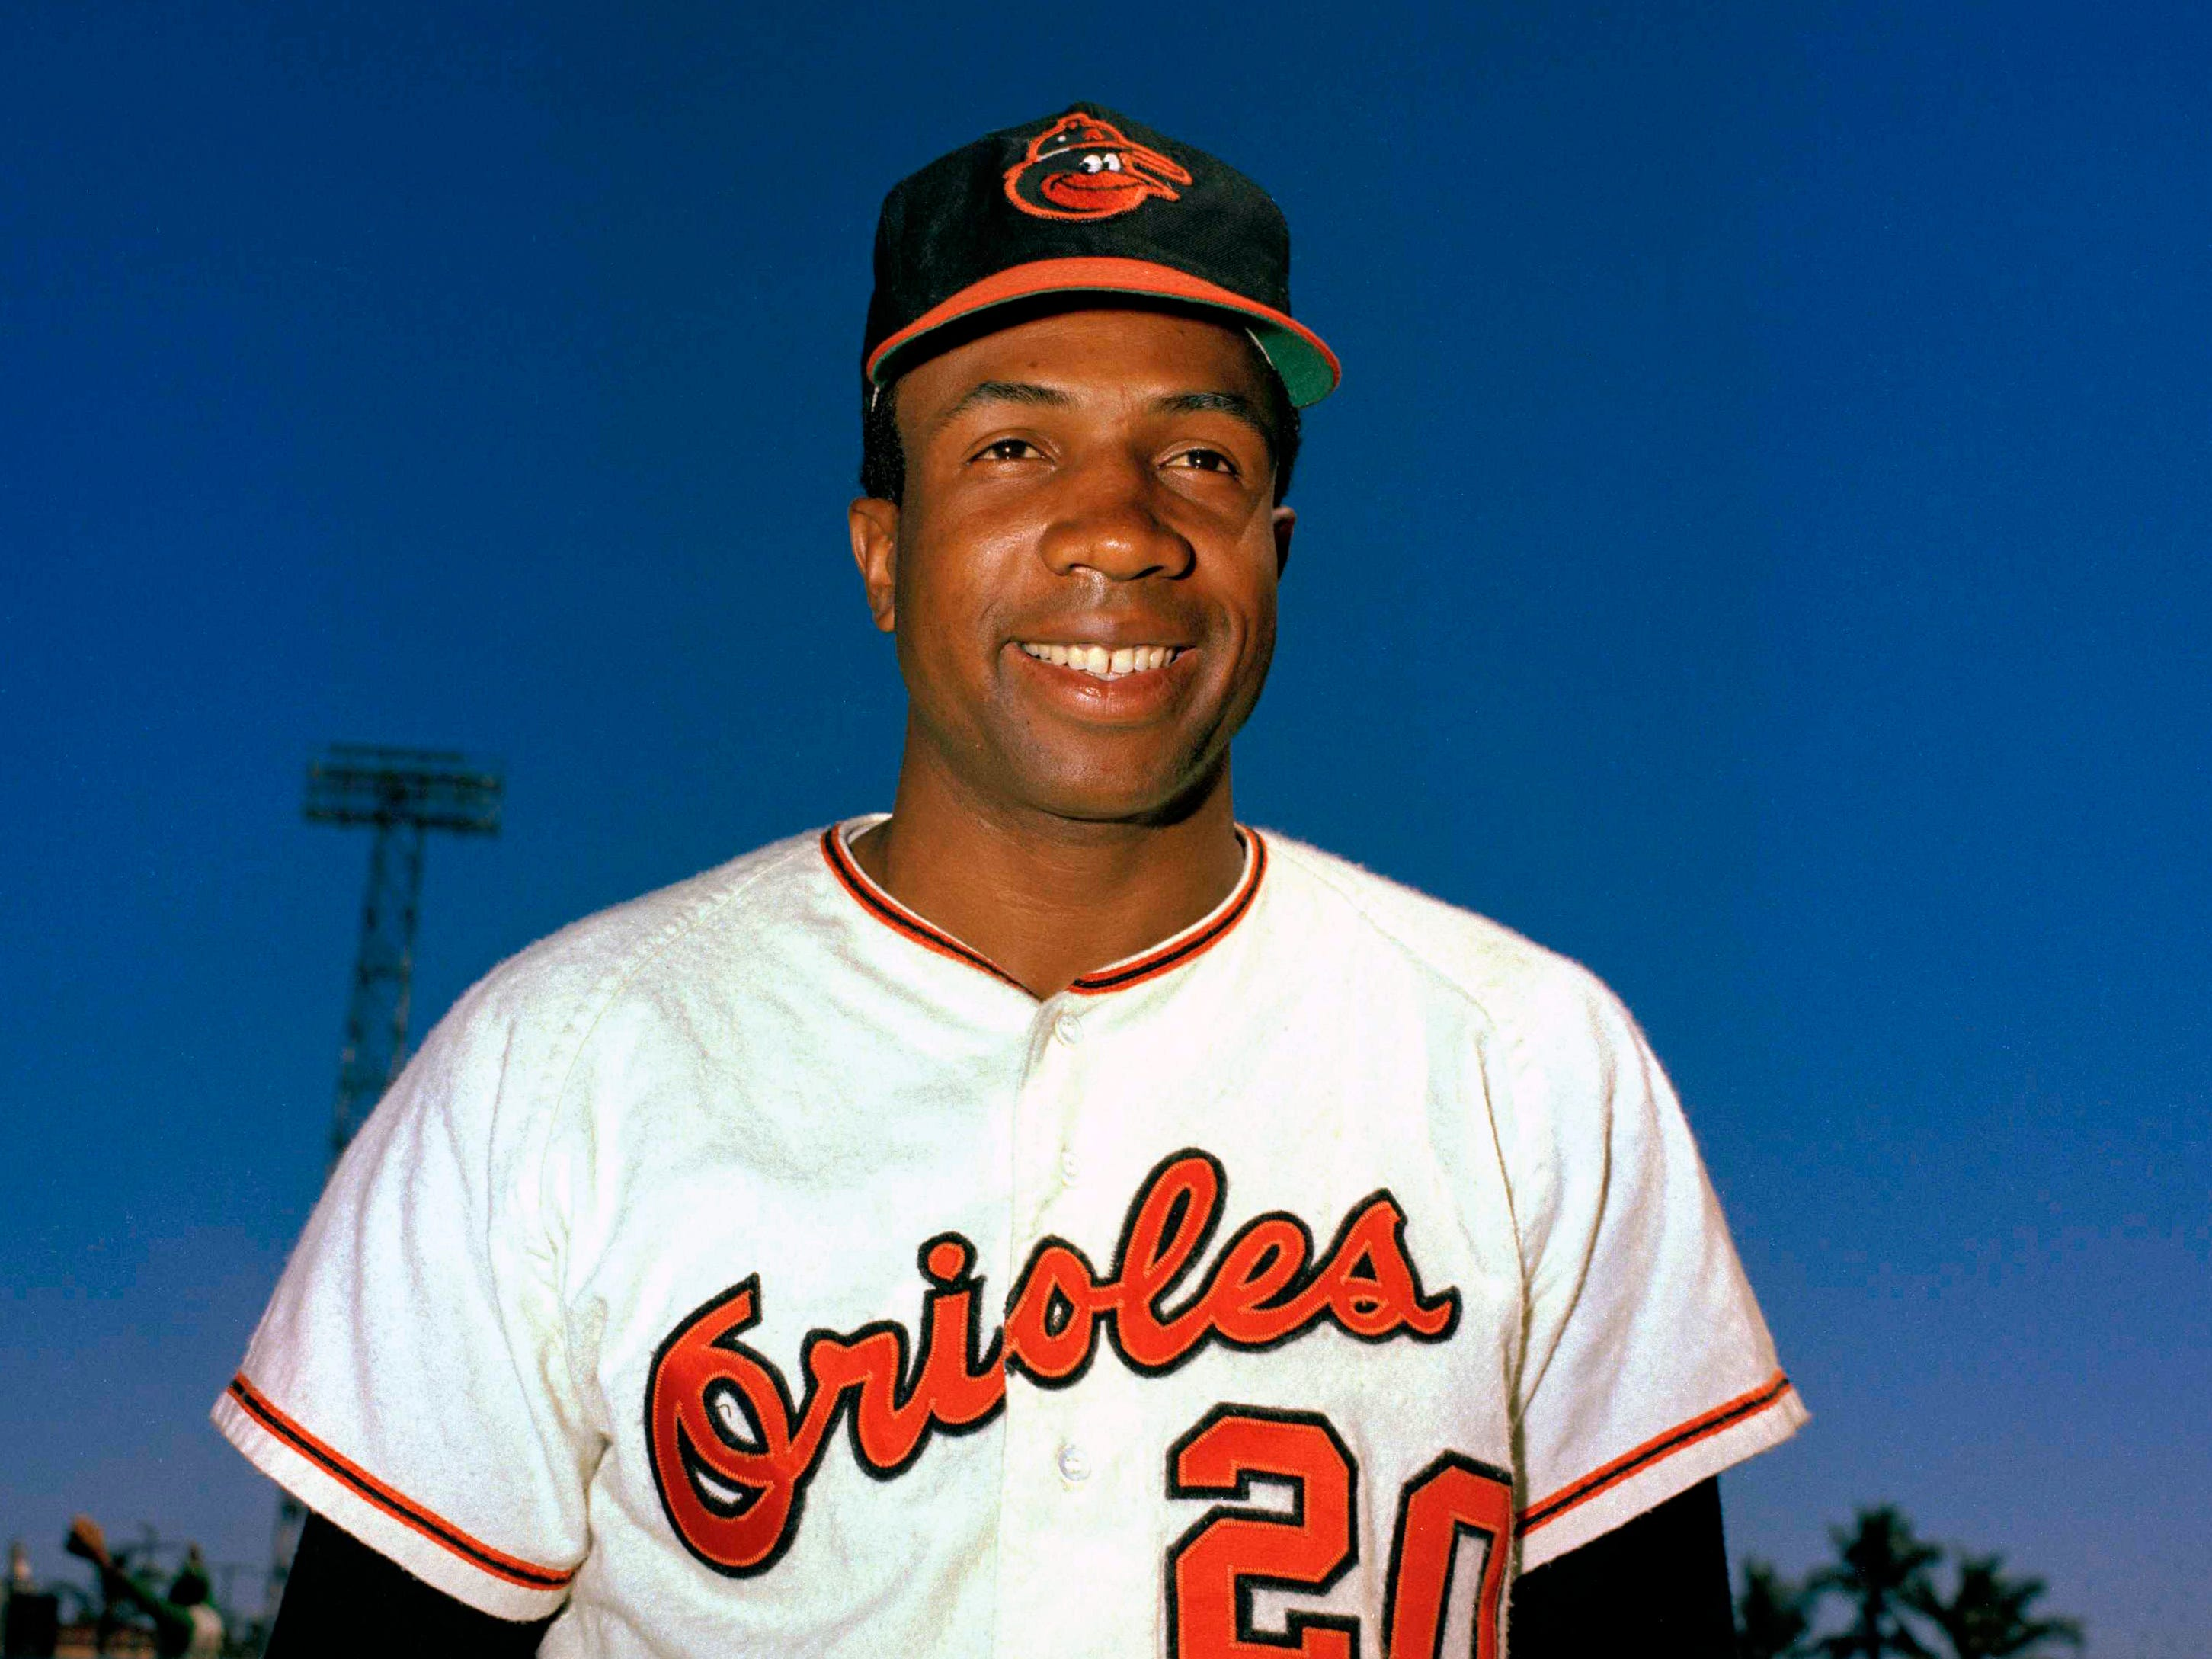 Hall of Famer Frank Robinson was the first black manager in Major League Baseball.